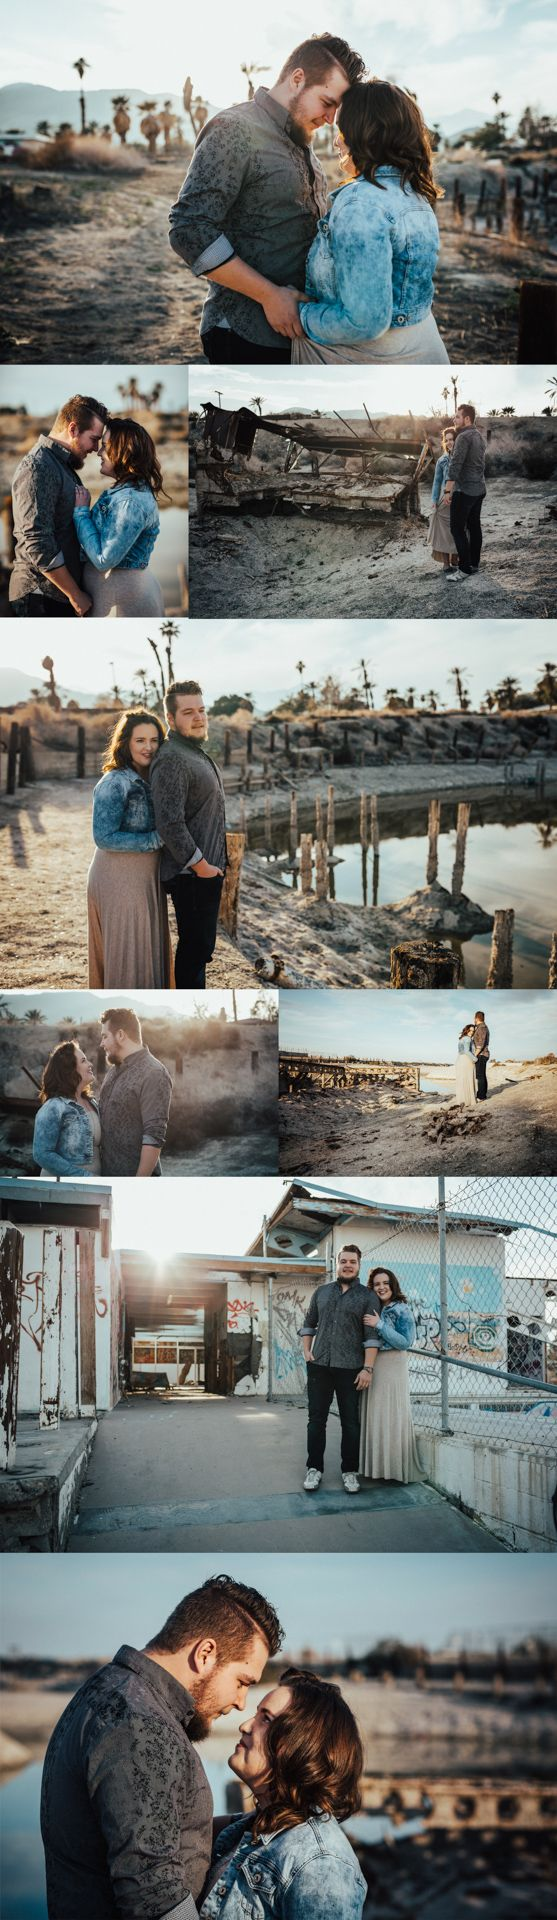 Sarah Thorpe Photography, Couples Photography, Couples sessions, Engagement session